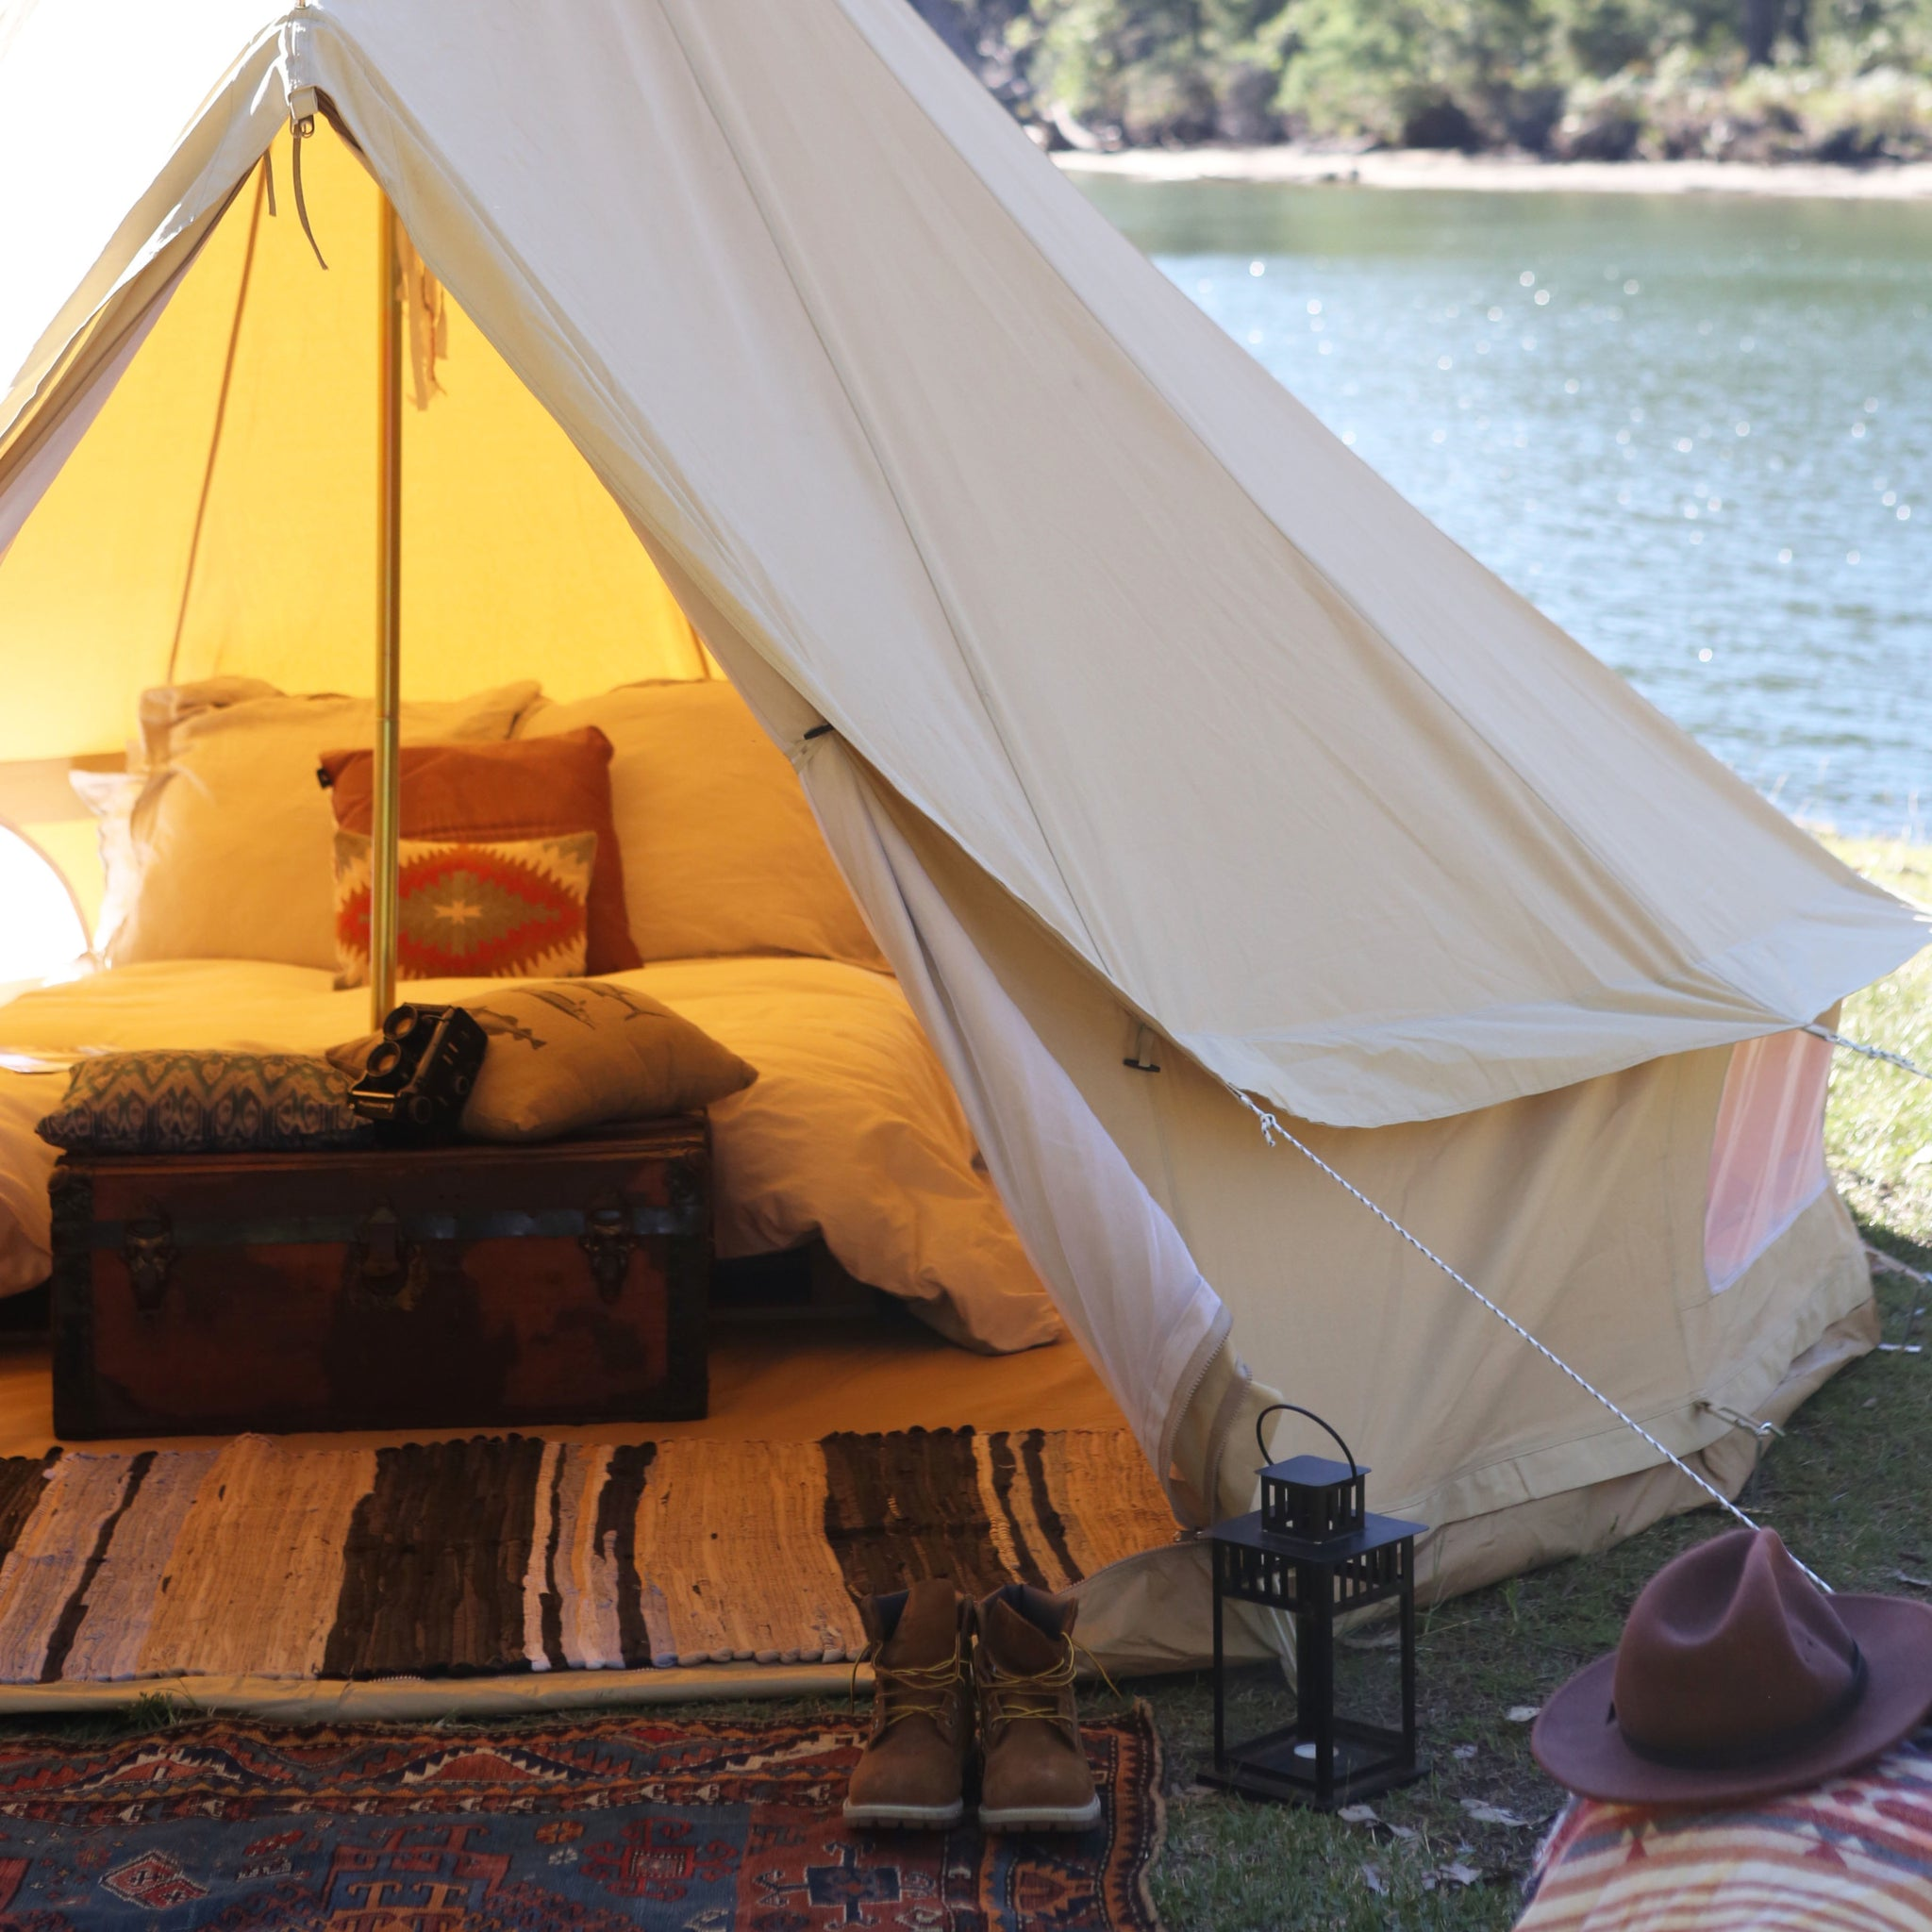 ... The Nomad 3m Canvas Bell Tent ... & The Nomad 3m Canvas Bell Tent u2013 Wholesome Habitat